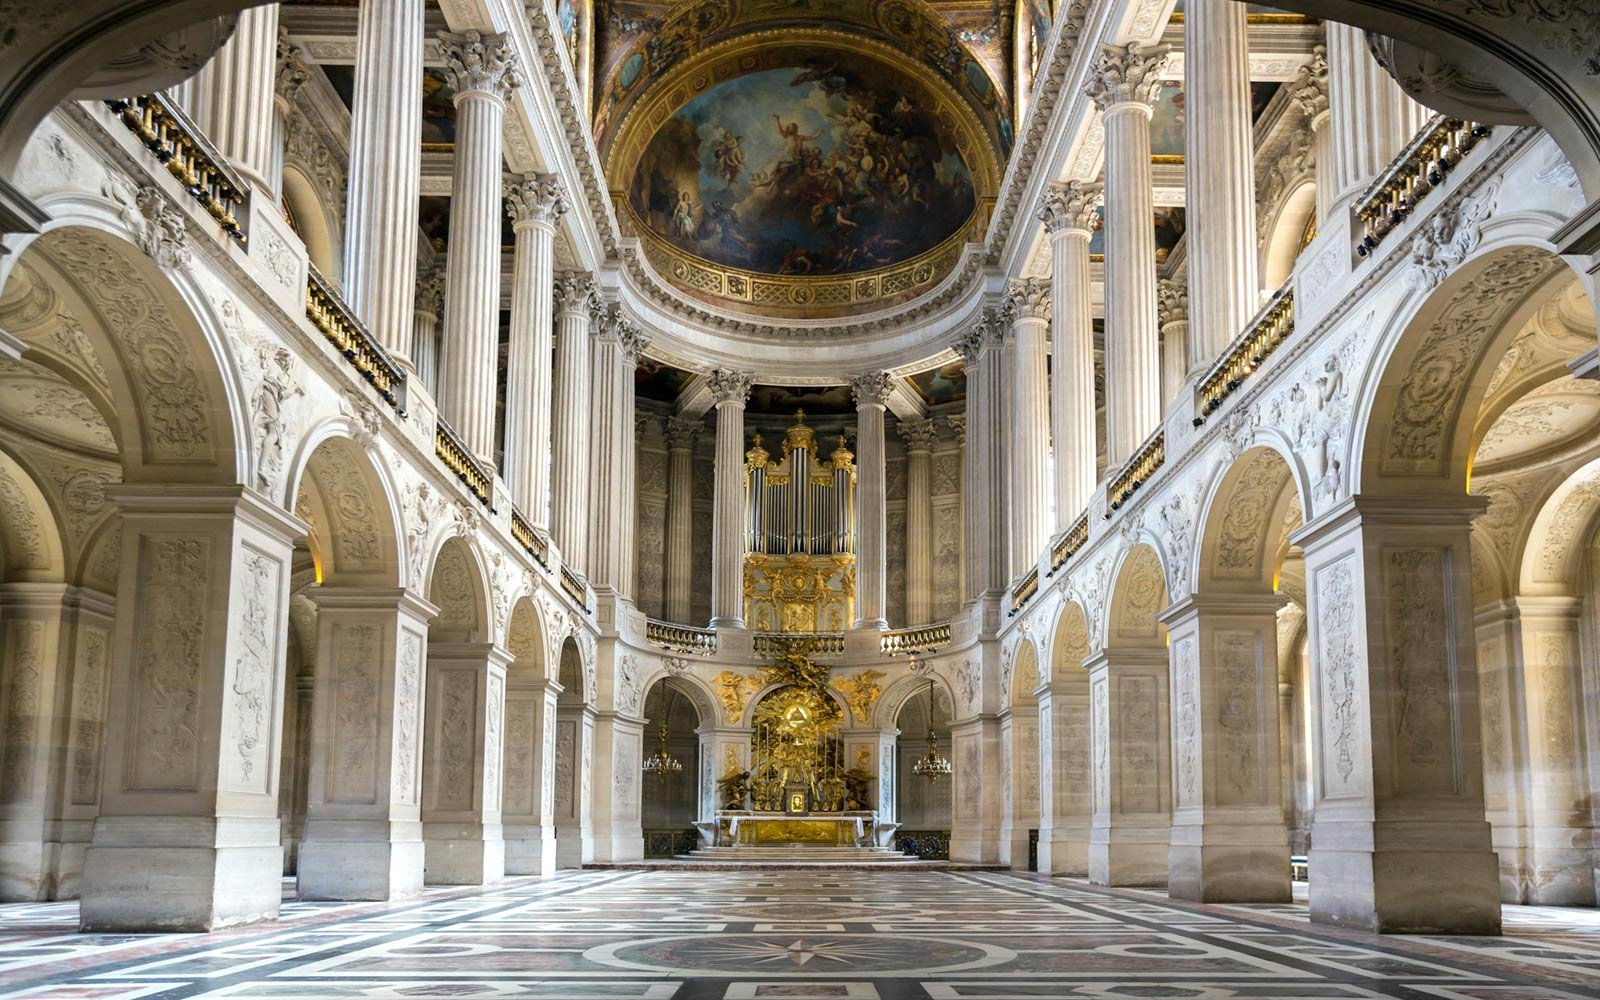 Royal Chapel, Versailles, France